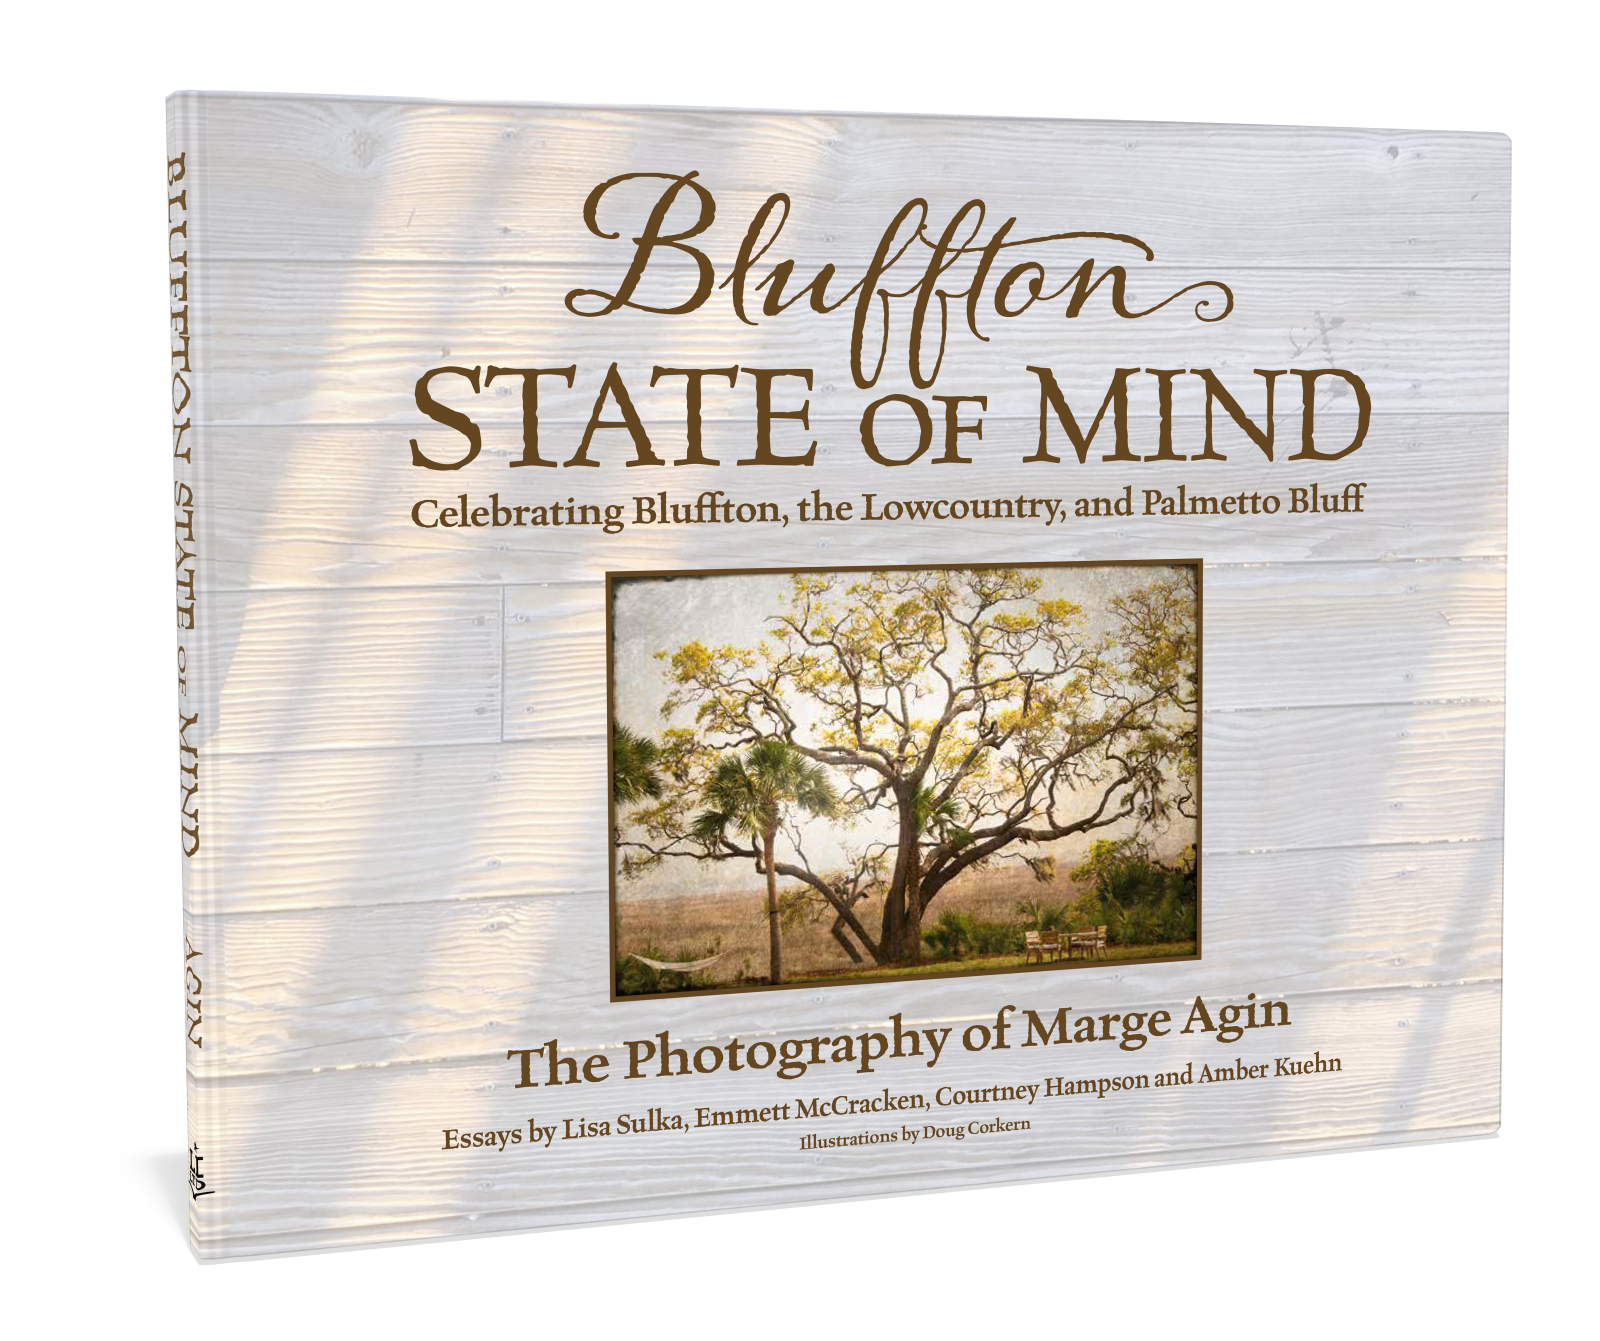 Bluffton State of Mind coffee table gift book Author Marge Agin Photopgrahy Bluffton, Palmetto Bluff and Lowcountry